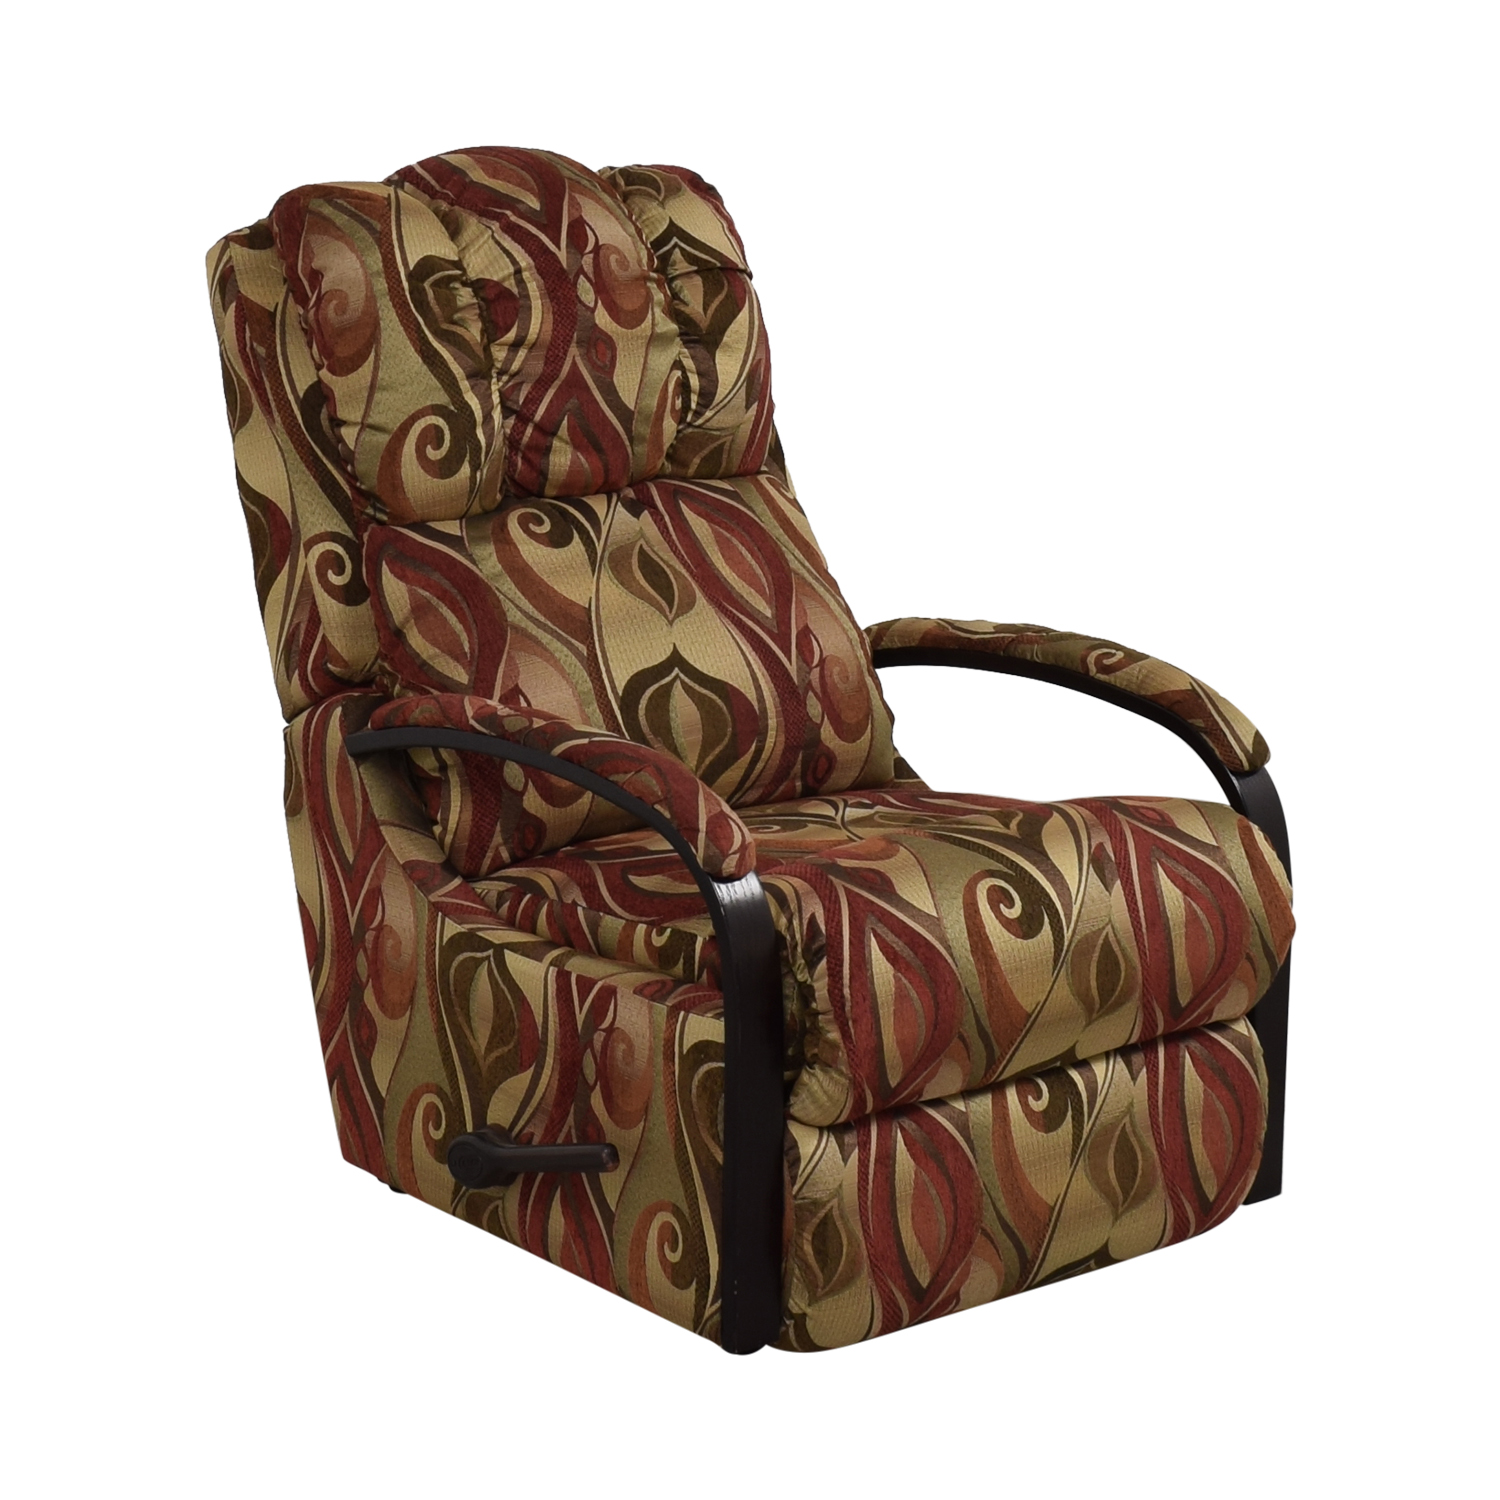 buy La-Z-Boy La-Z-Boy Harbor Town Reclina-Way Recliner online